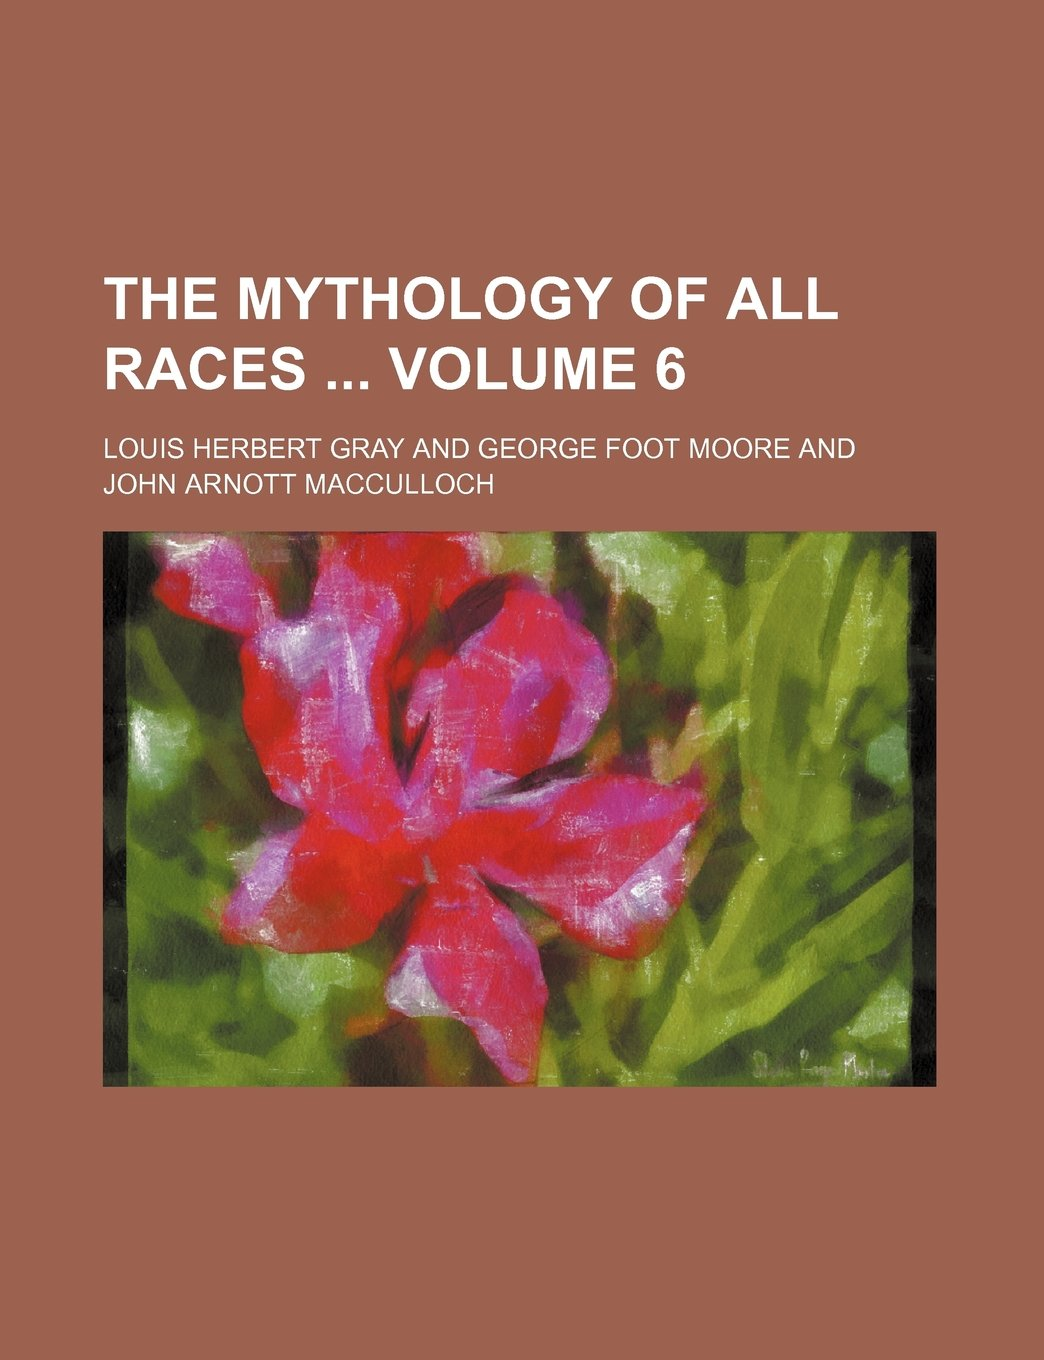 Read Online The Mythology of all races  Volume 6 PDF